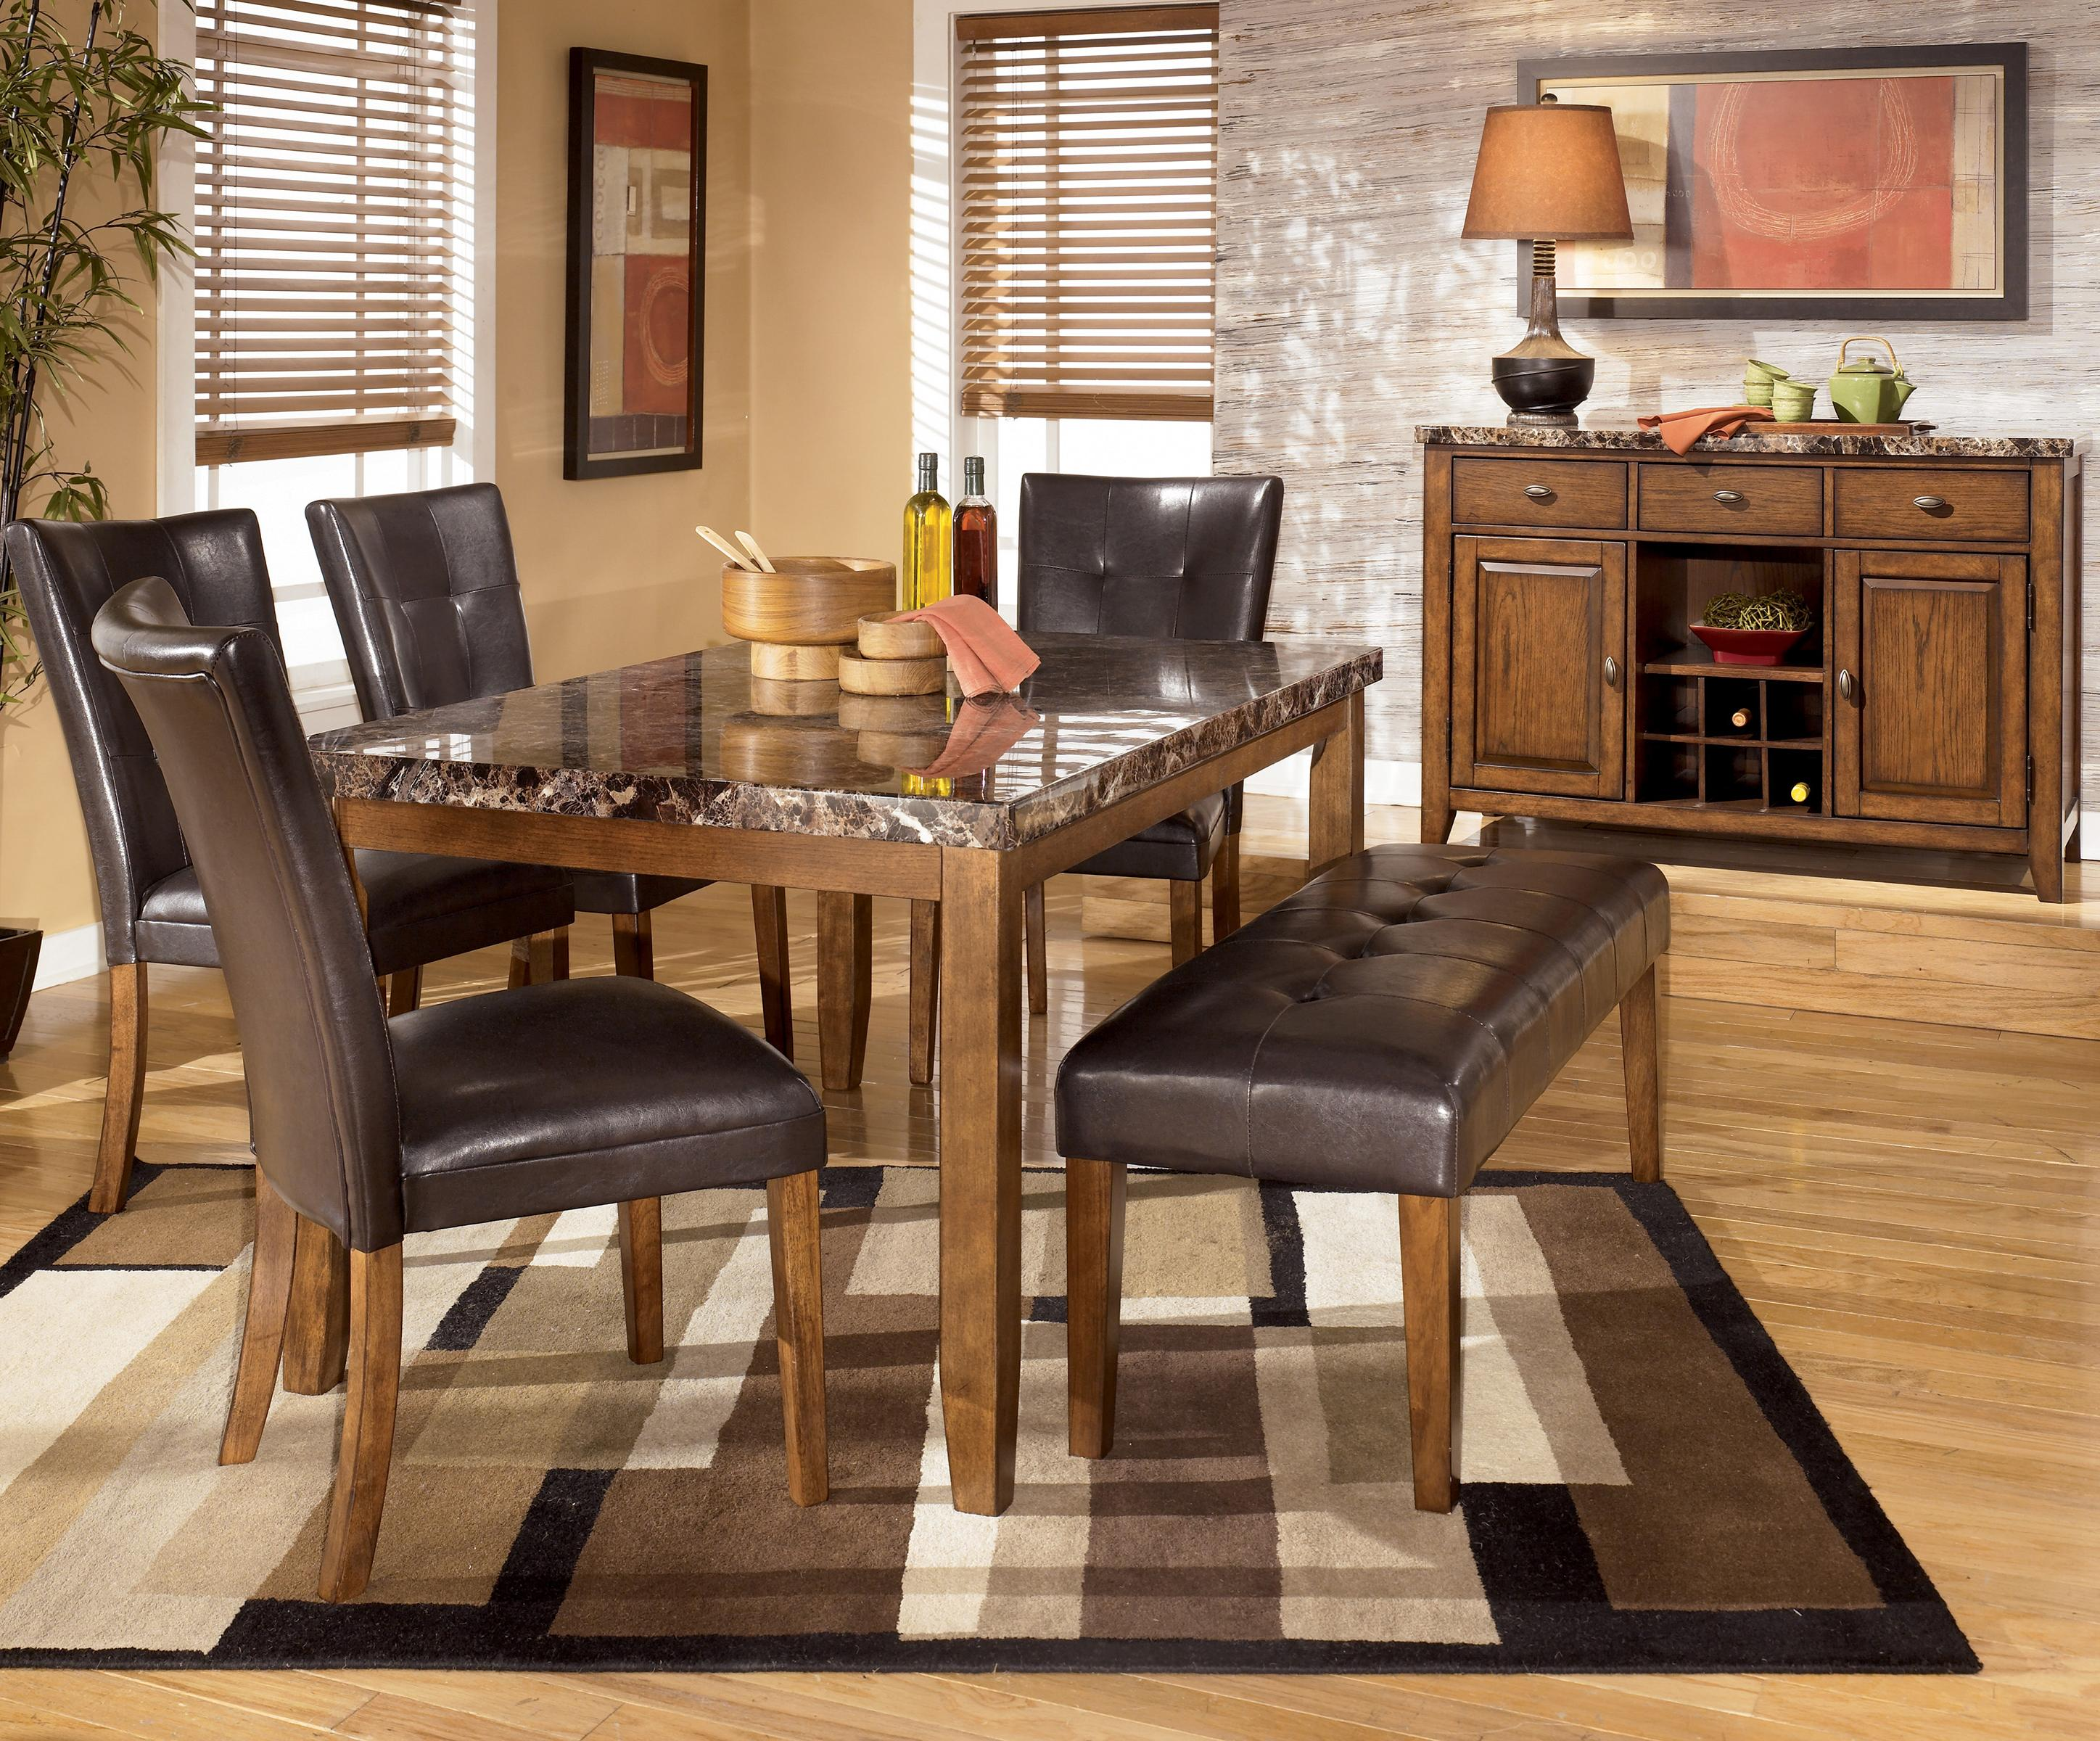 BrowseDiningRoom kitchen table chairs set Signature Design by Ashley Lacey 6 Piece Dining Table Chairs Bench Set